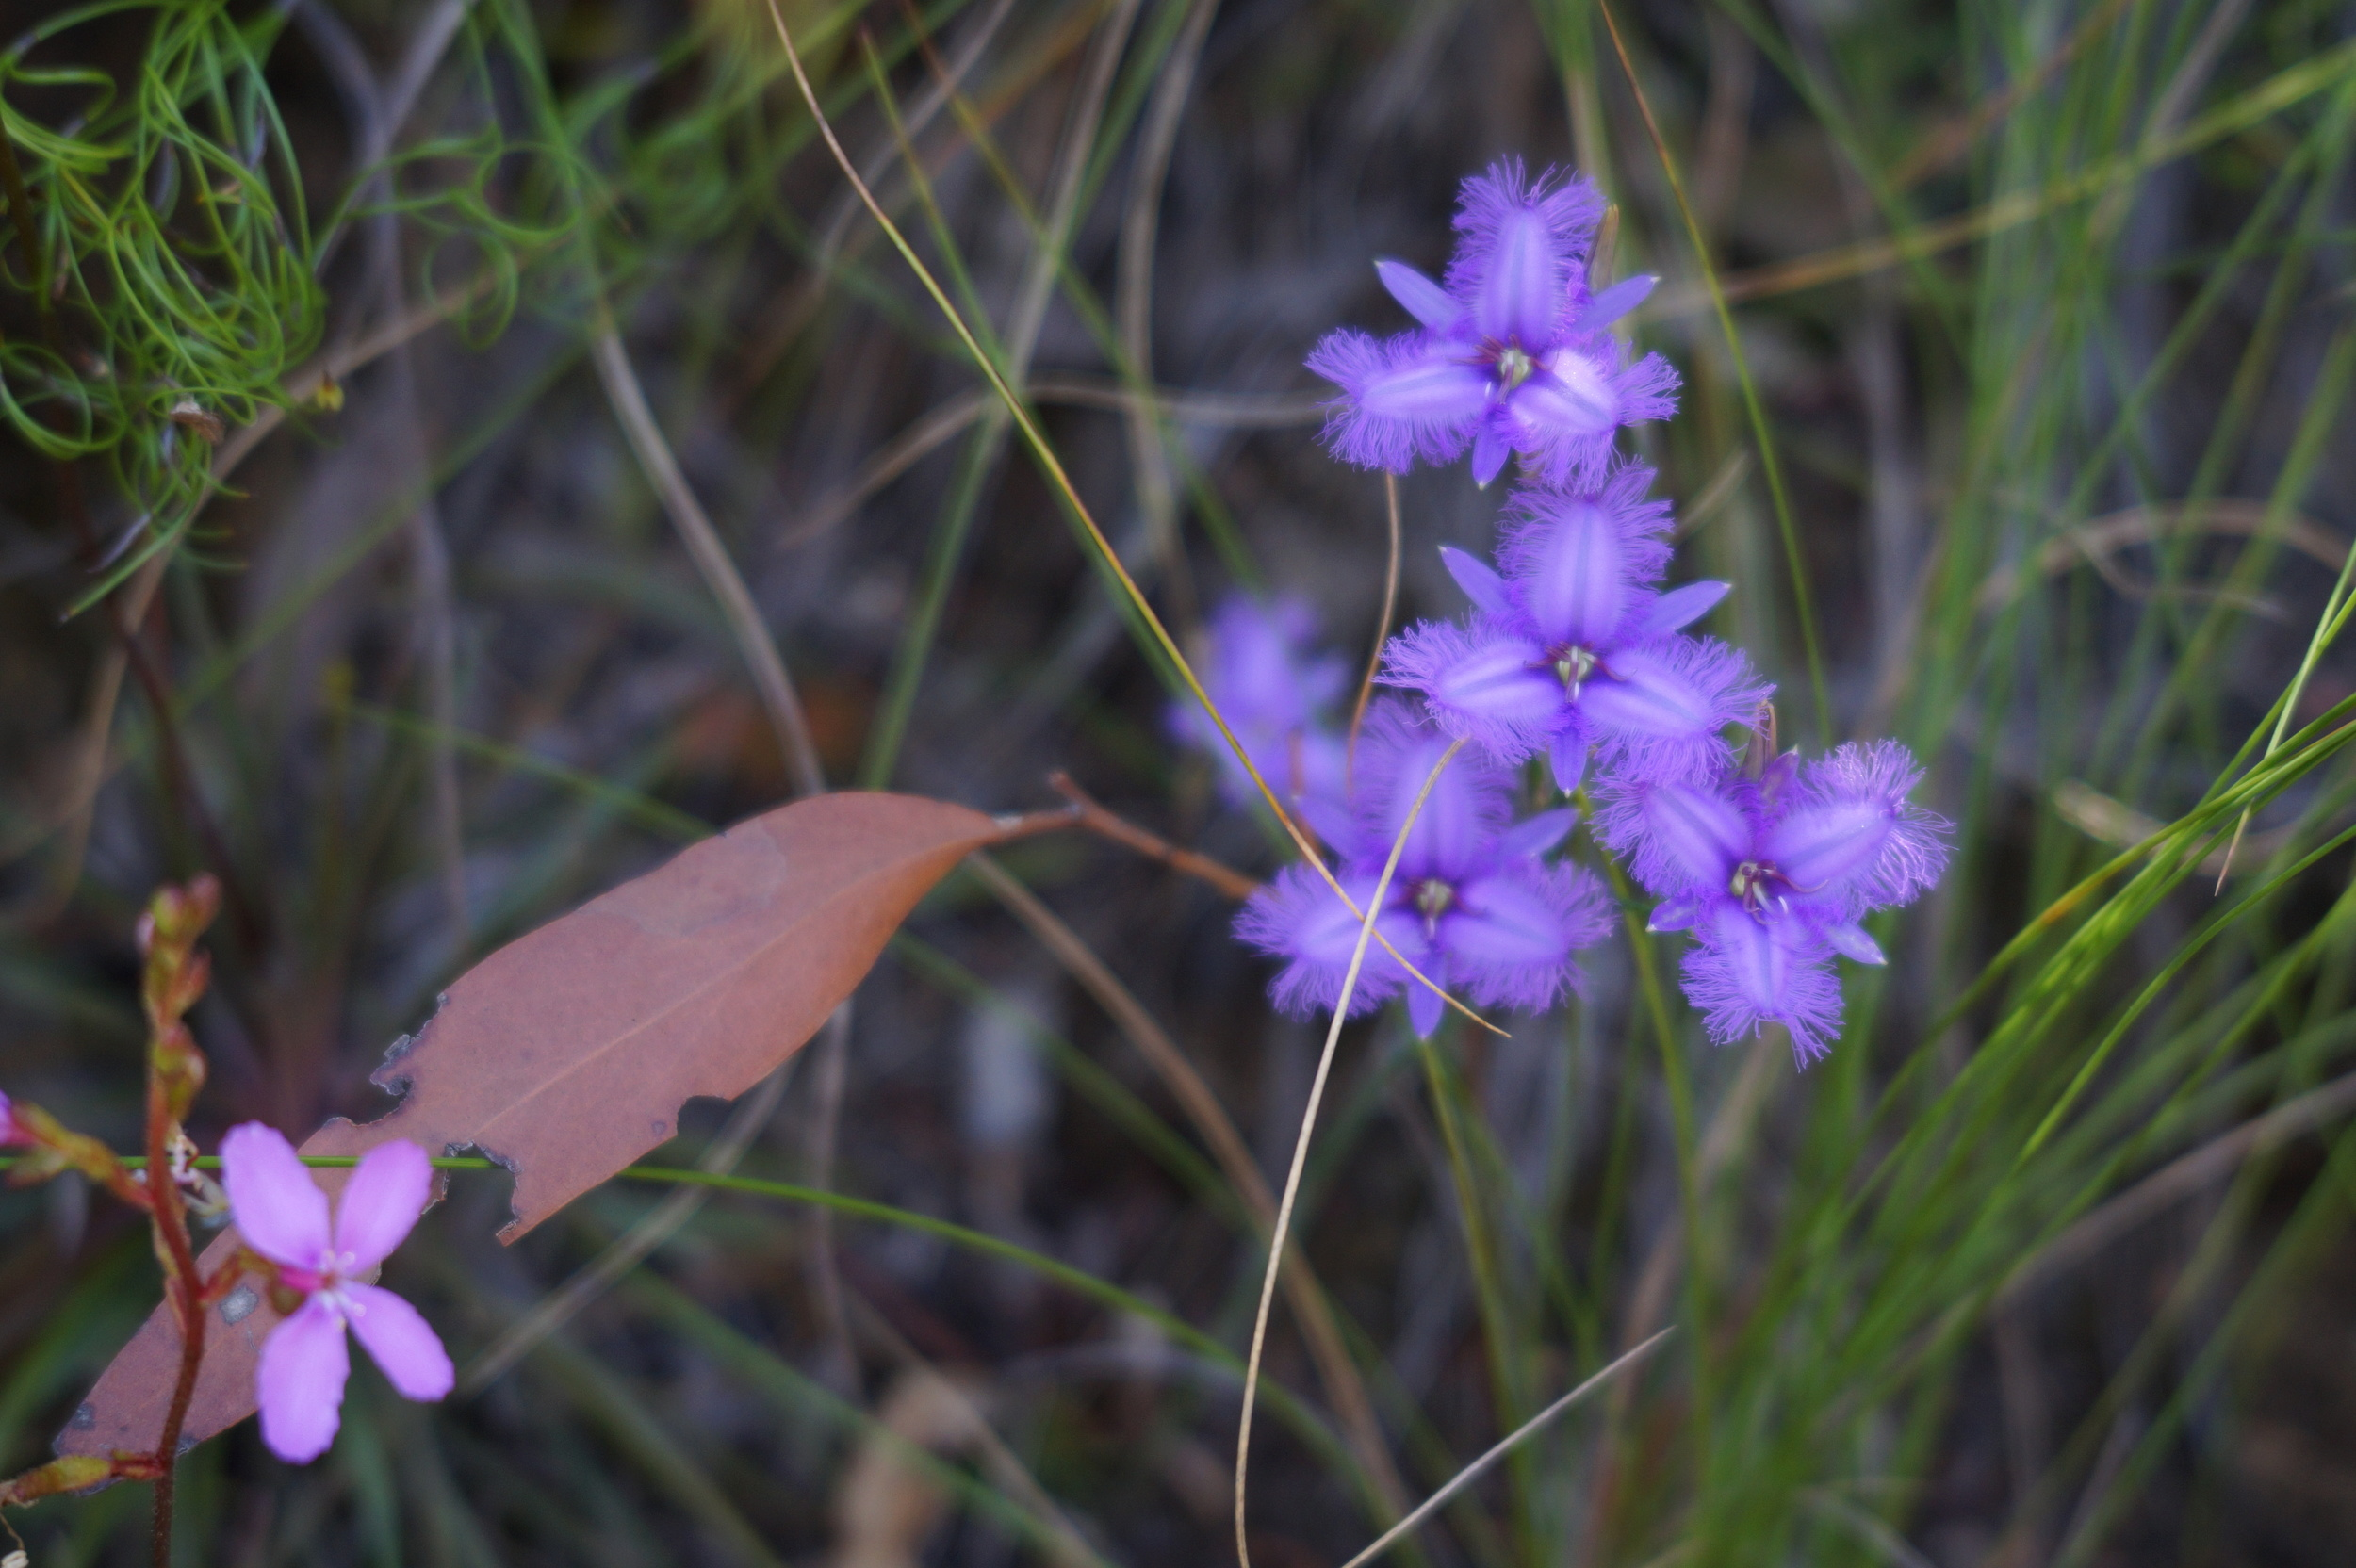 Fringe violets appear in Australia ever so rarely, passionately adored by some and a joy to find.